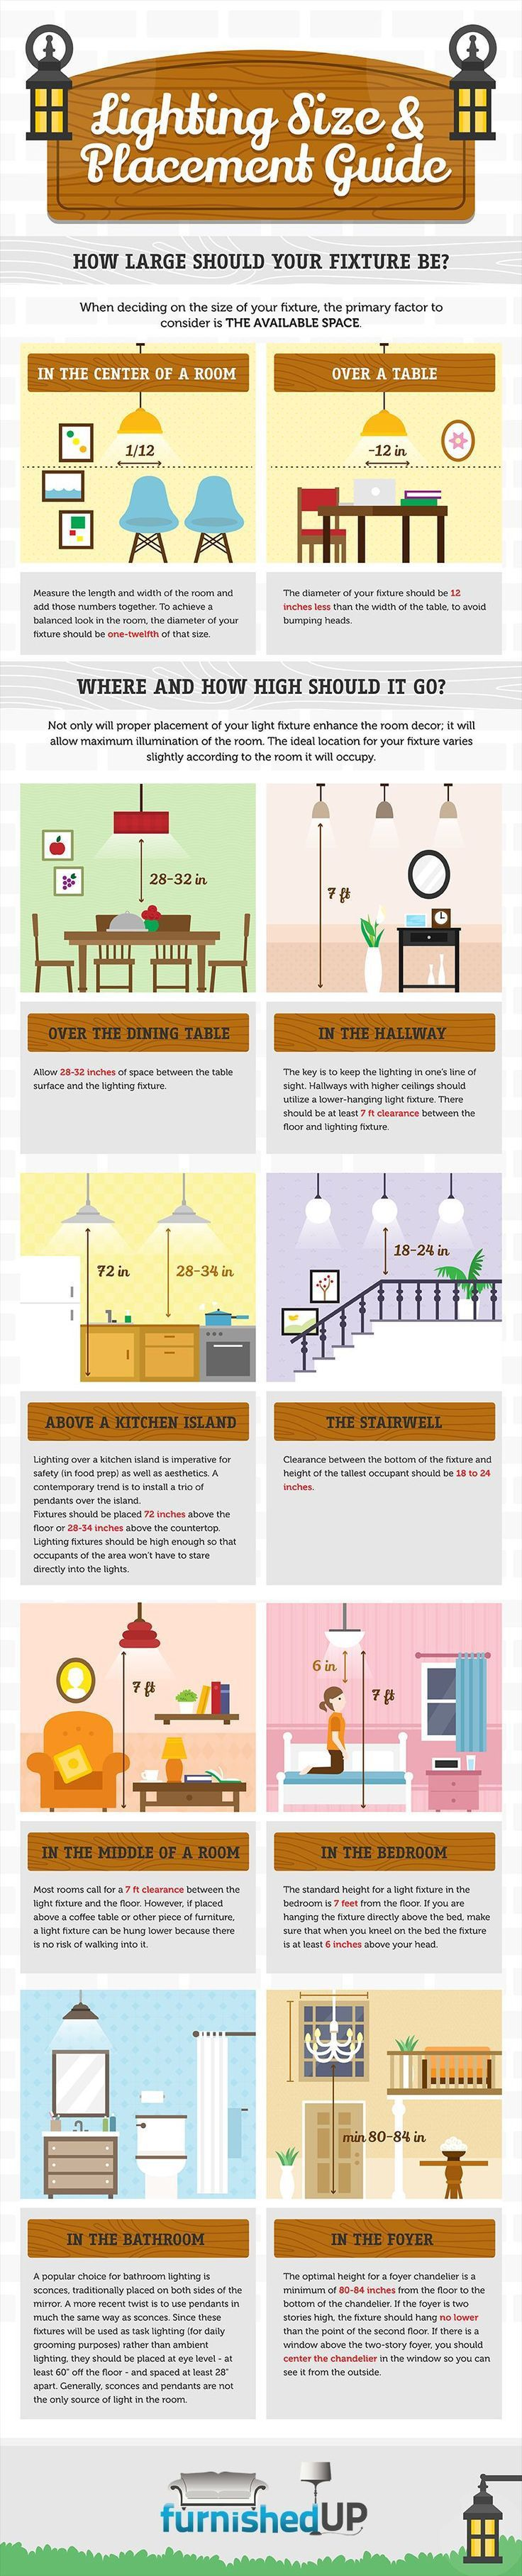 Lighting size and placement guide infographic